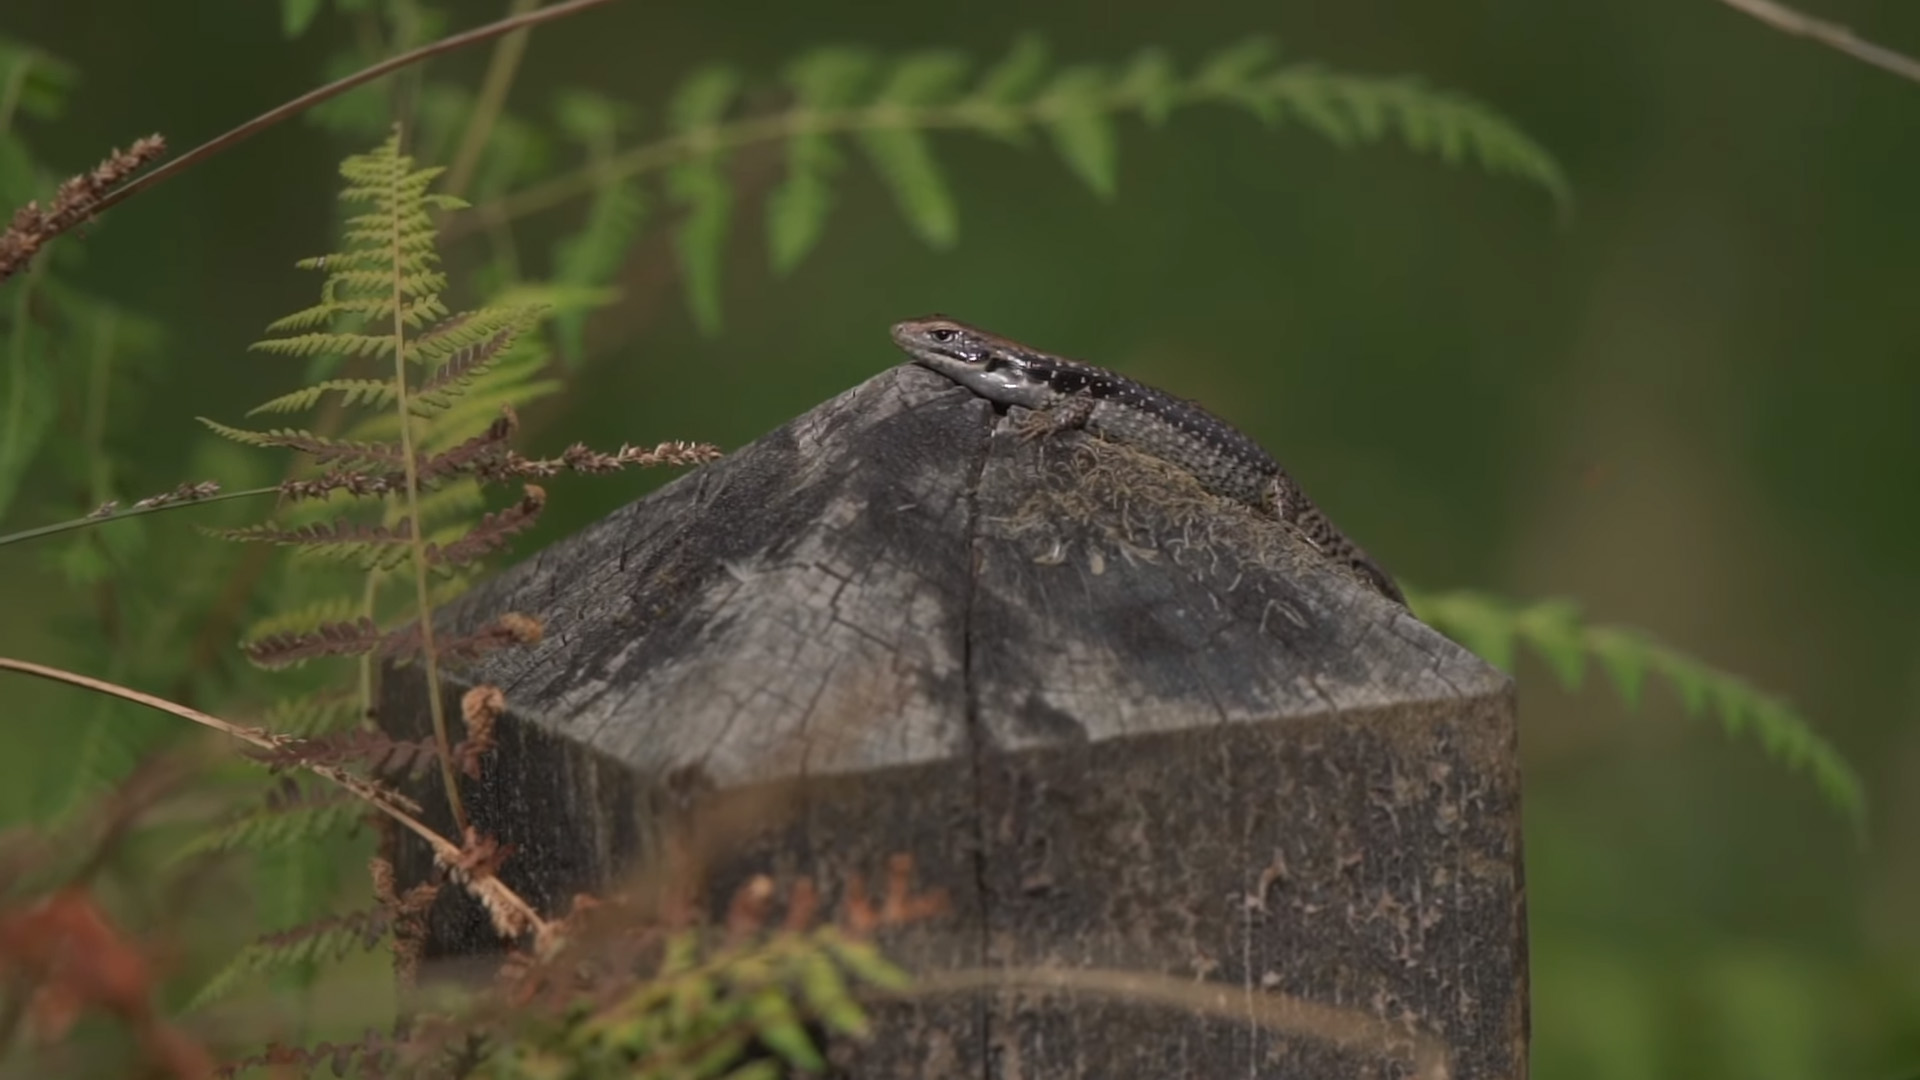 environmental values check lizard on fence post in forest near warburton